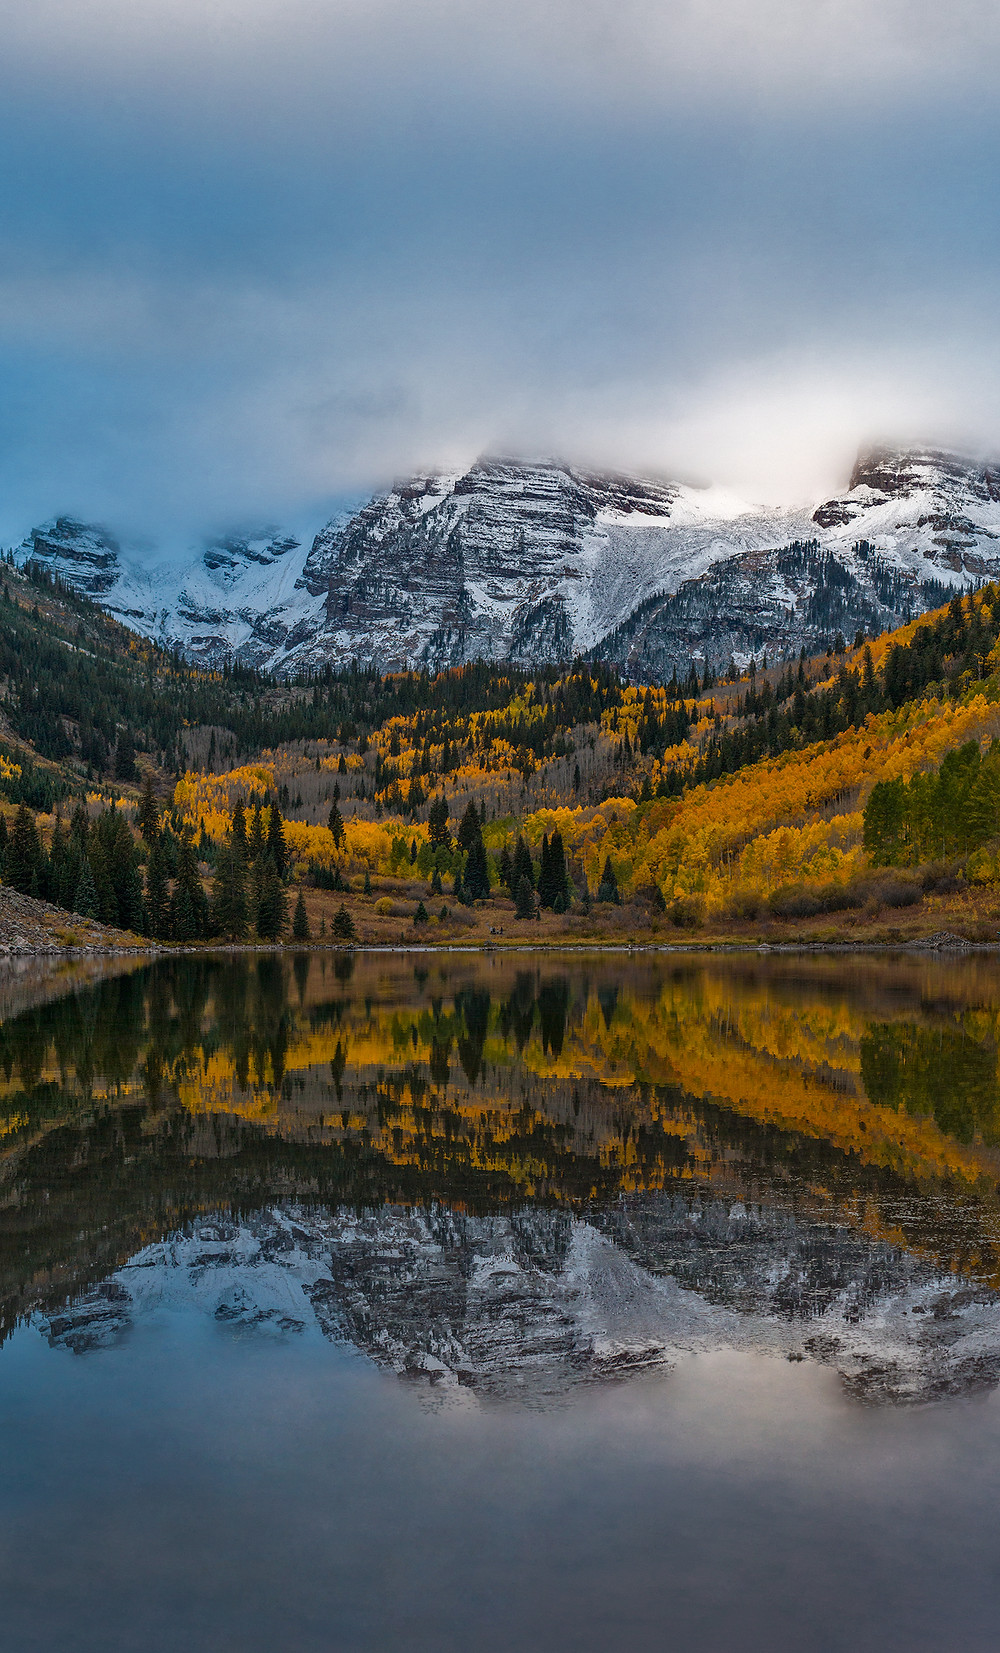 A cloudy morning reflection of the Maroon Bells over Maroon Lake in Aspen, Colorado